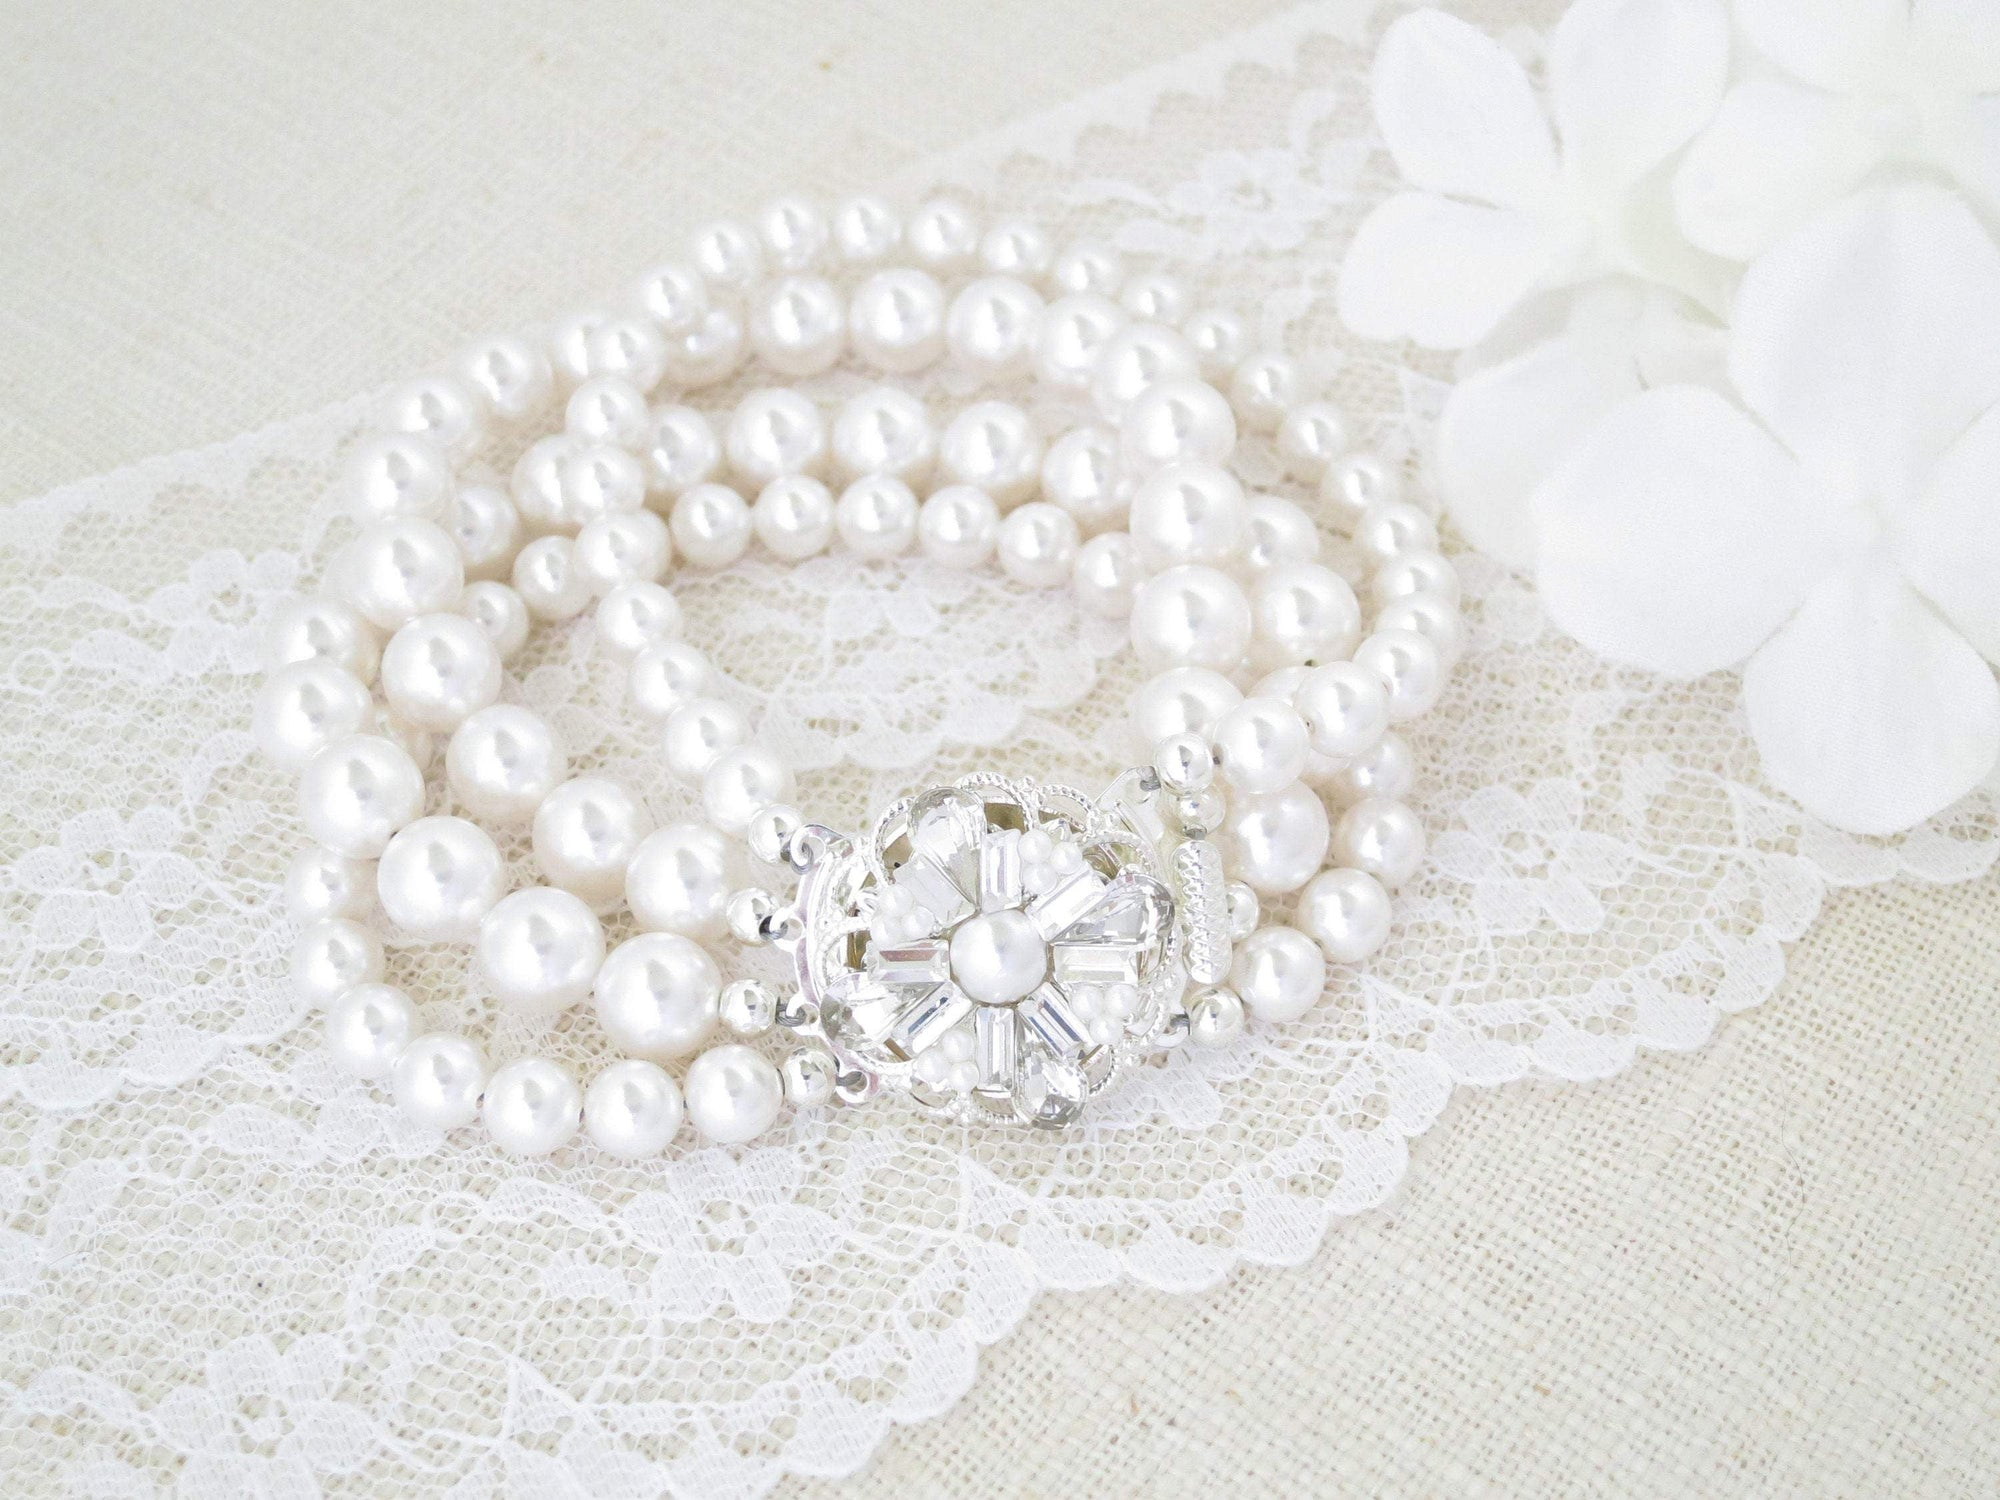 NOLA:  Multi Strand Pearl Cuff - BlingBaddaBoom - Minimalist, Vintage, Modern Wedding and Bridal Jewelry